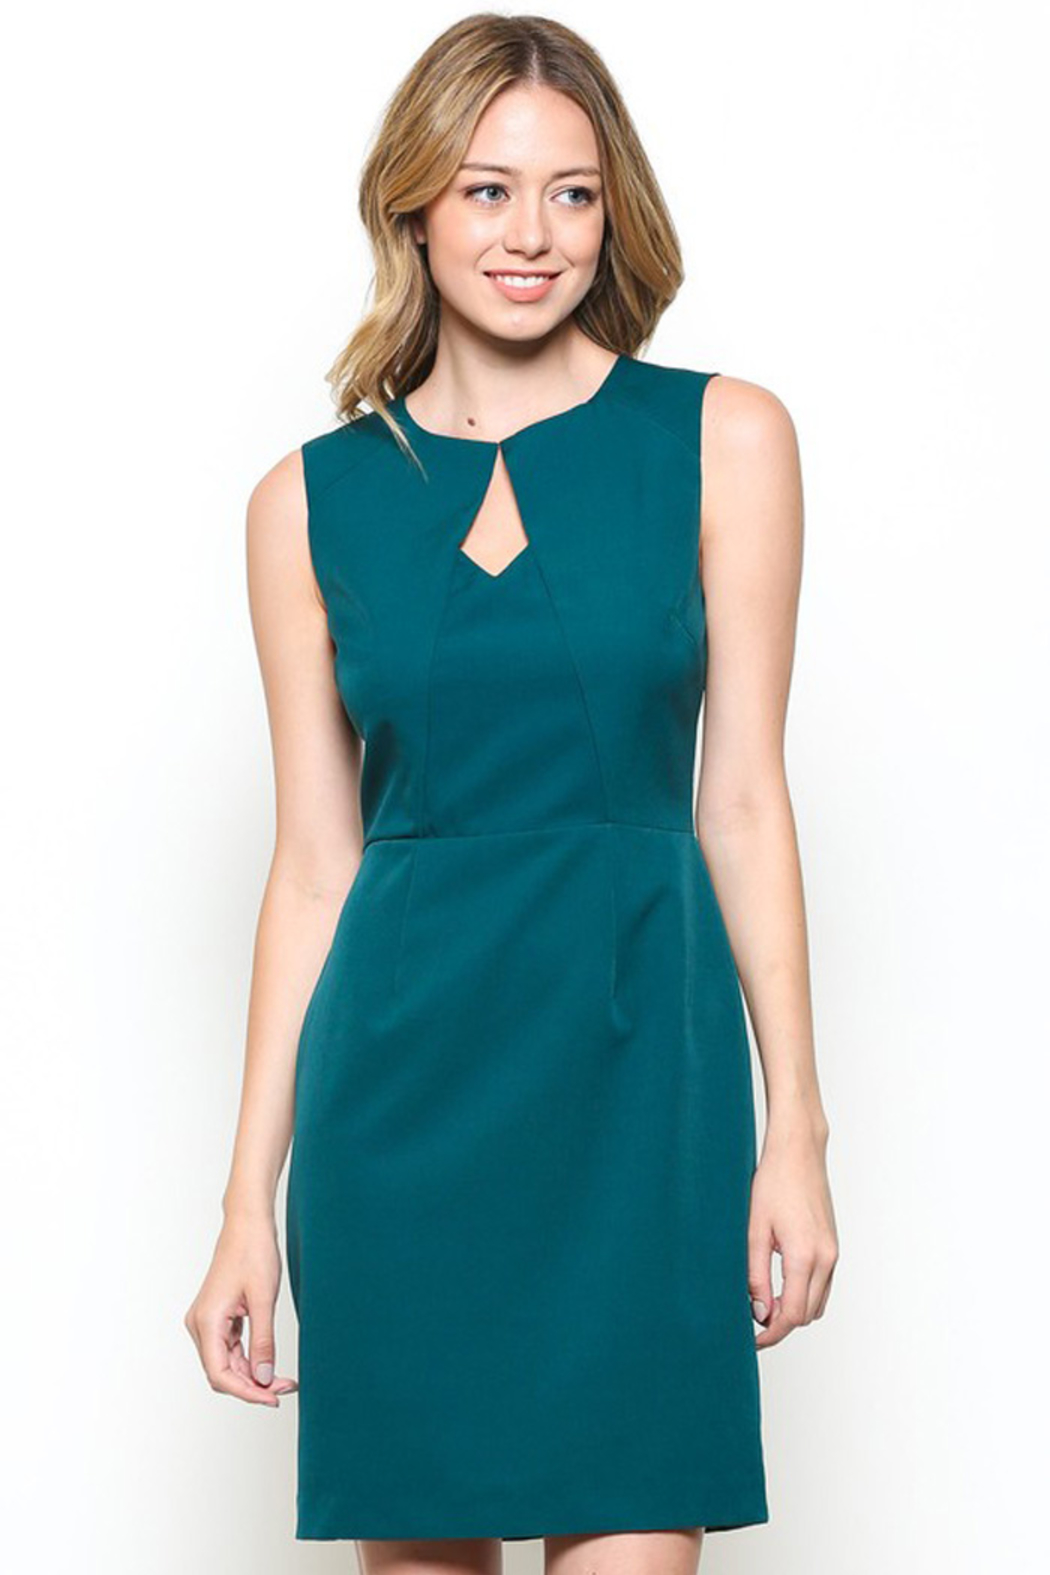 Esley Teal Sleeveless Sheath Dress with Front Cut-Out - Front Full Image